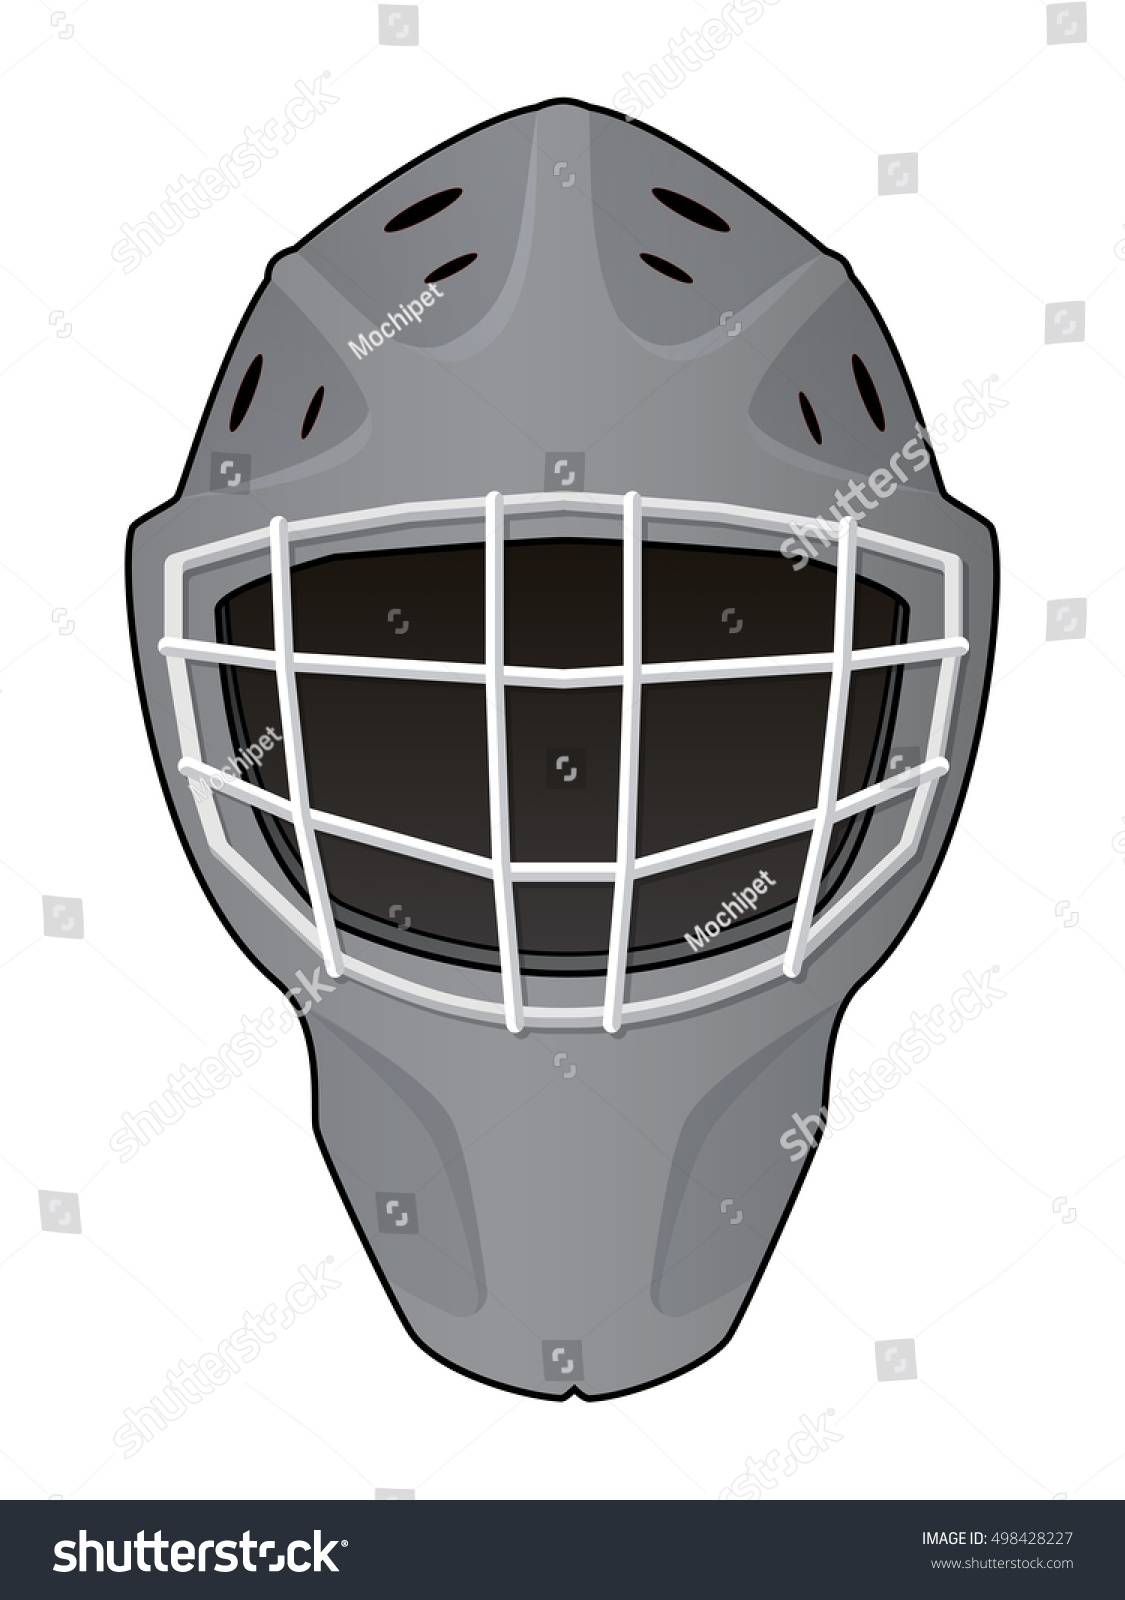 Goalie mask template official custom template sheets for Bauer goalie mask template